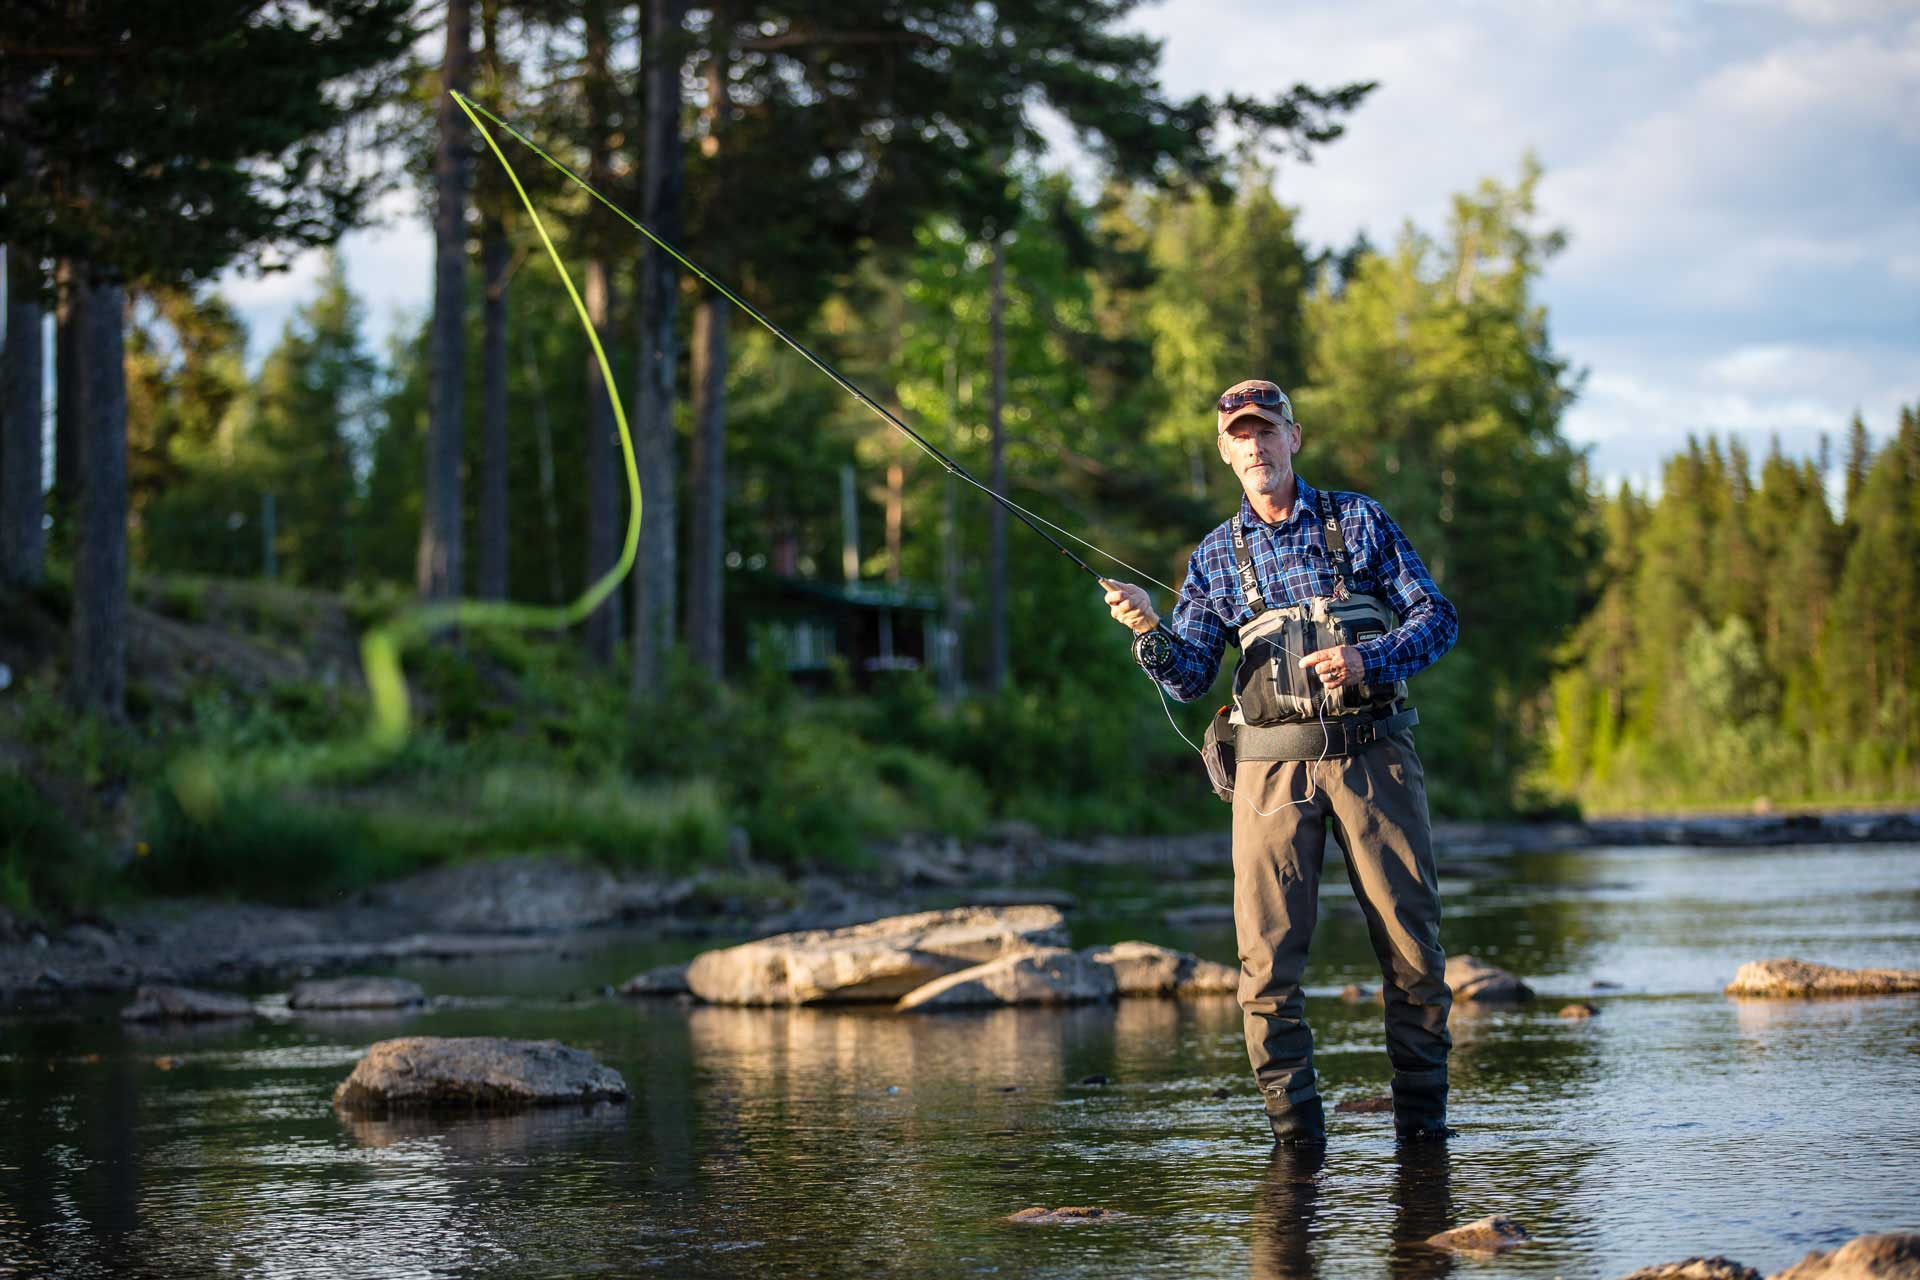 Fly fishing Kvissleströmmarna | Photo: Anette Andersson